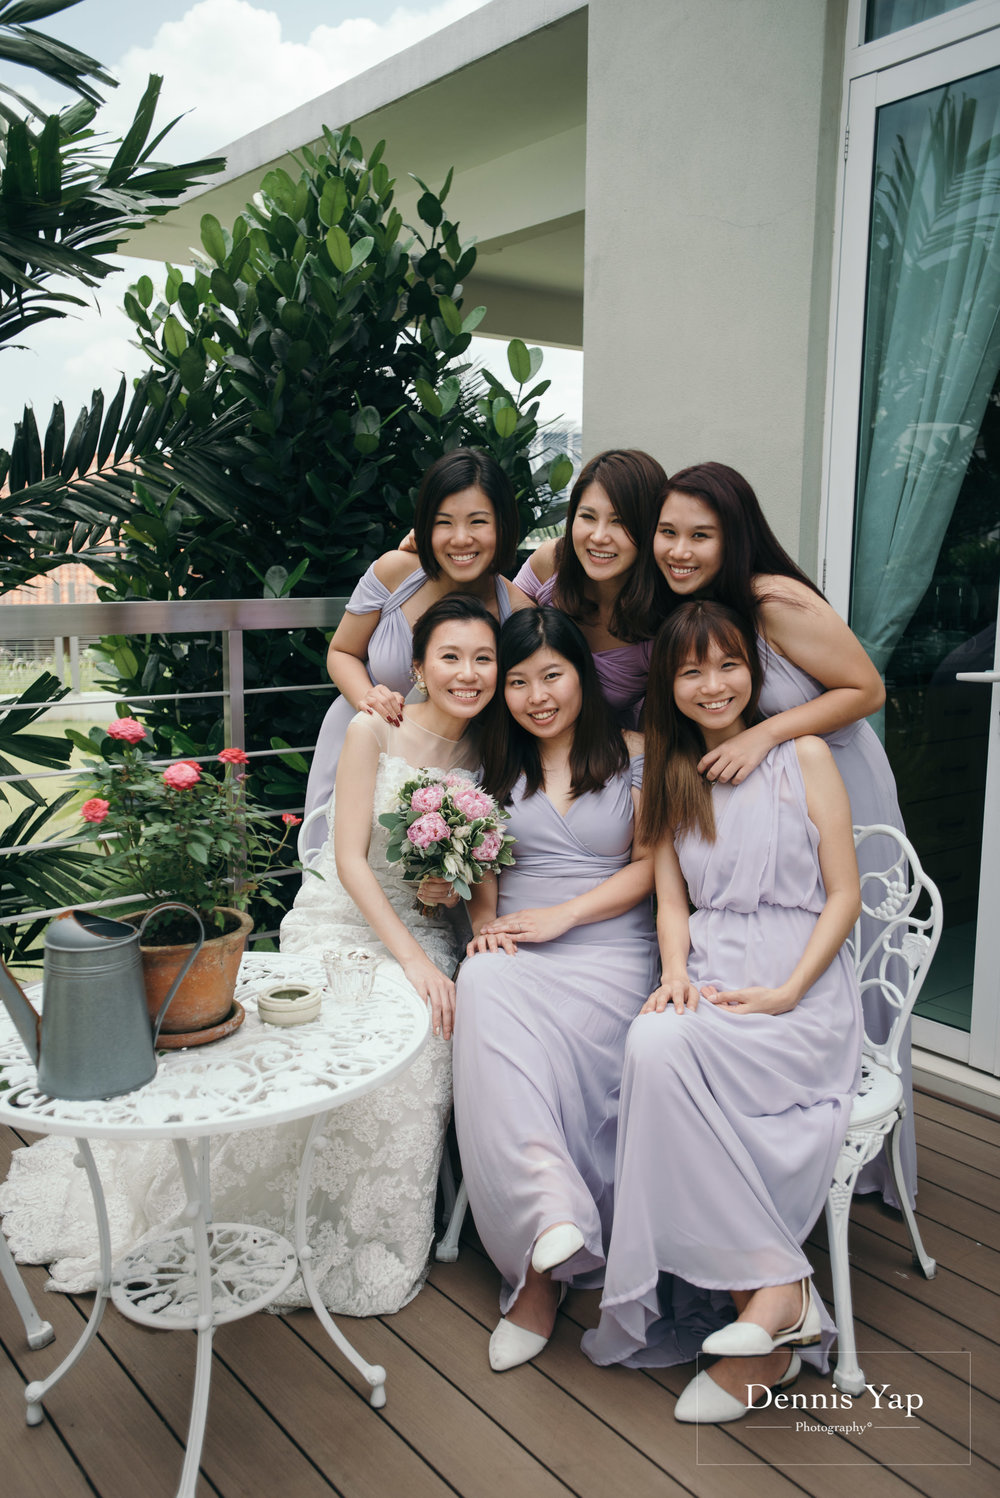 danny sherine wedding day group photo dennis yap photography usj heights malaysia top wedding photographer-18.jpg